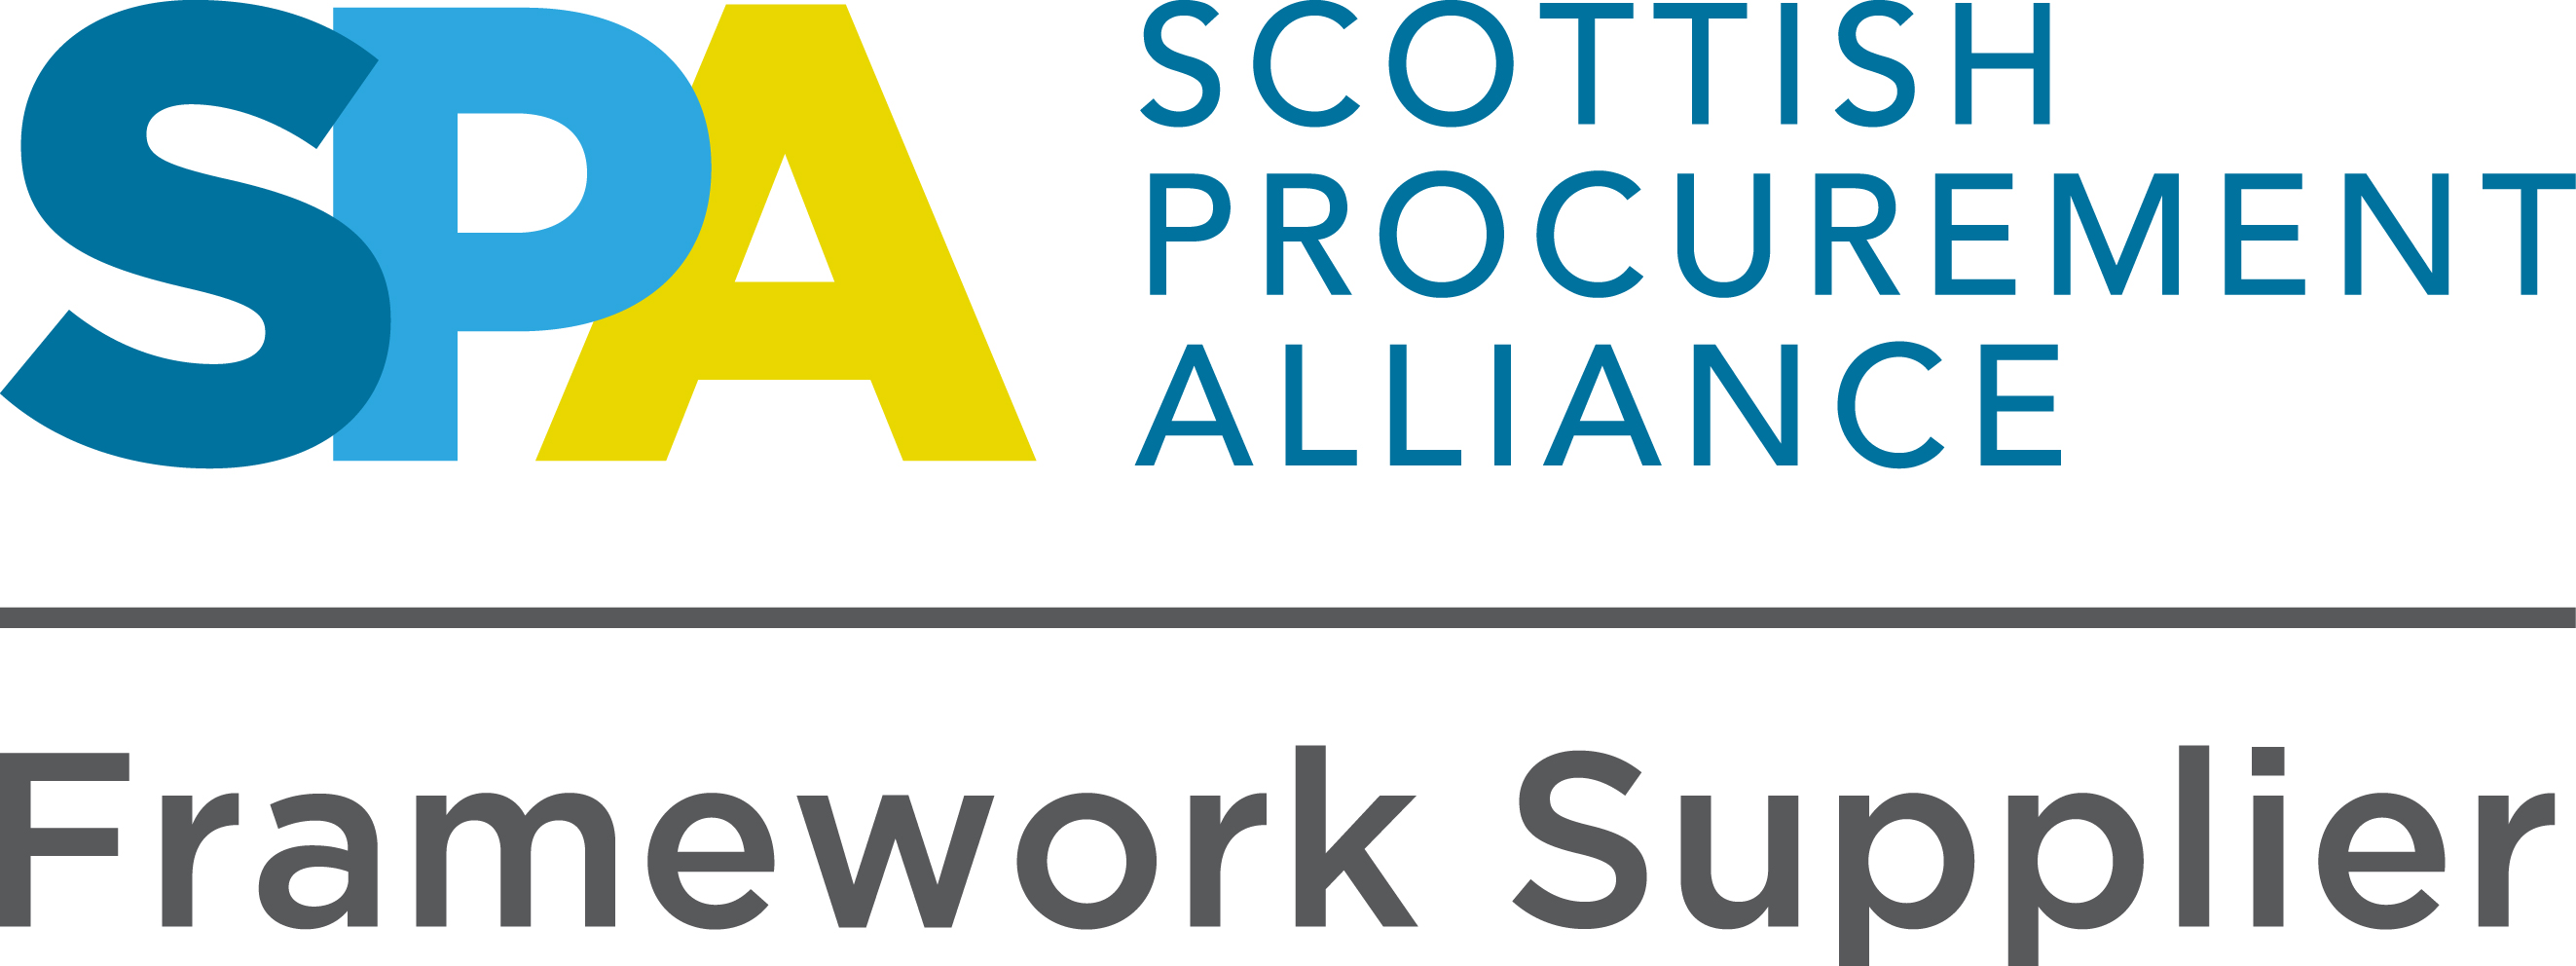 Scottish Procurement Alliance Framework Supplier